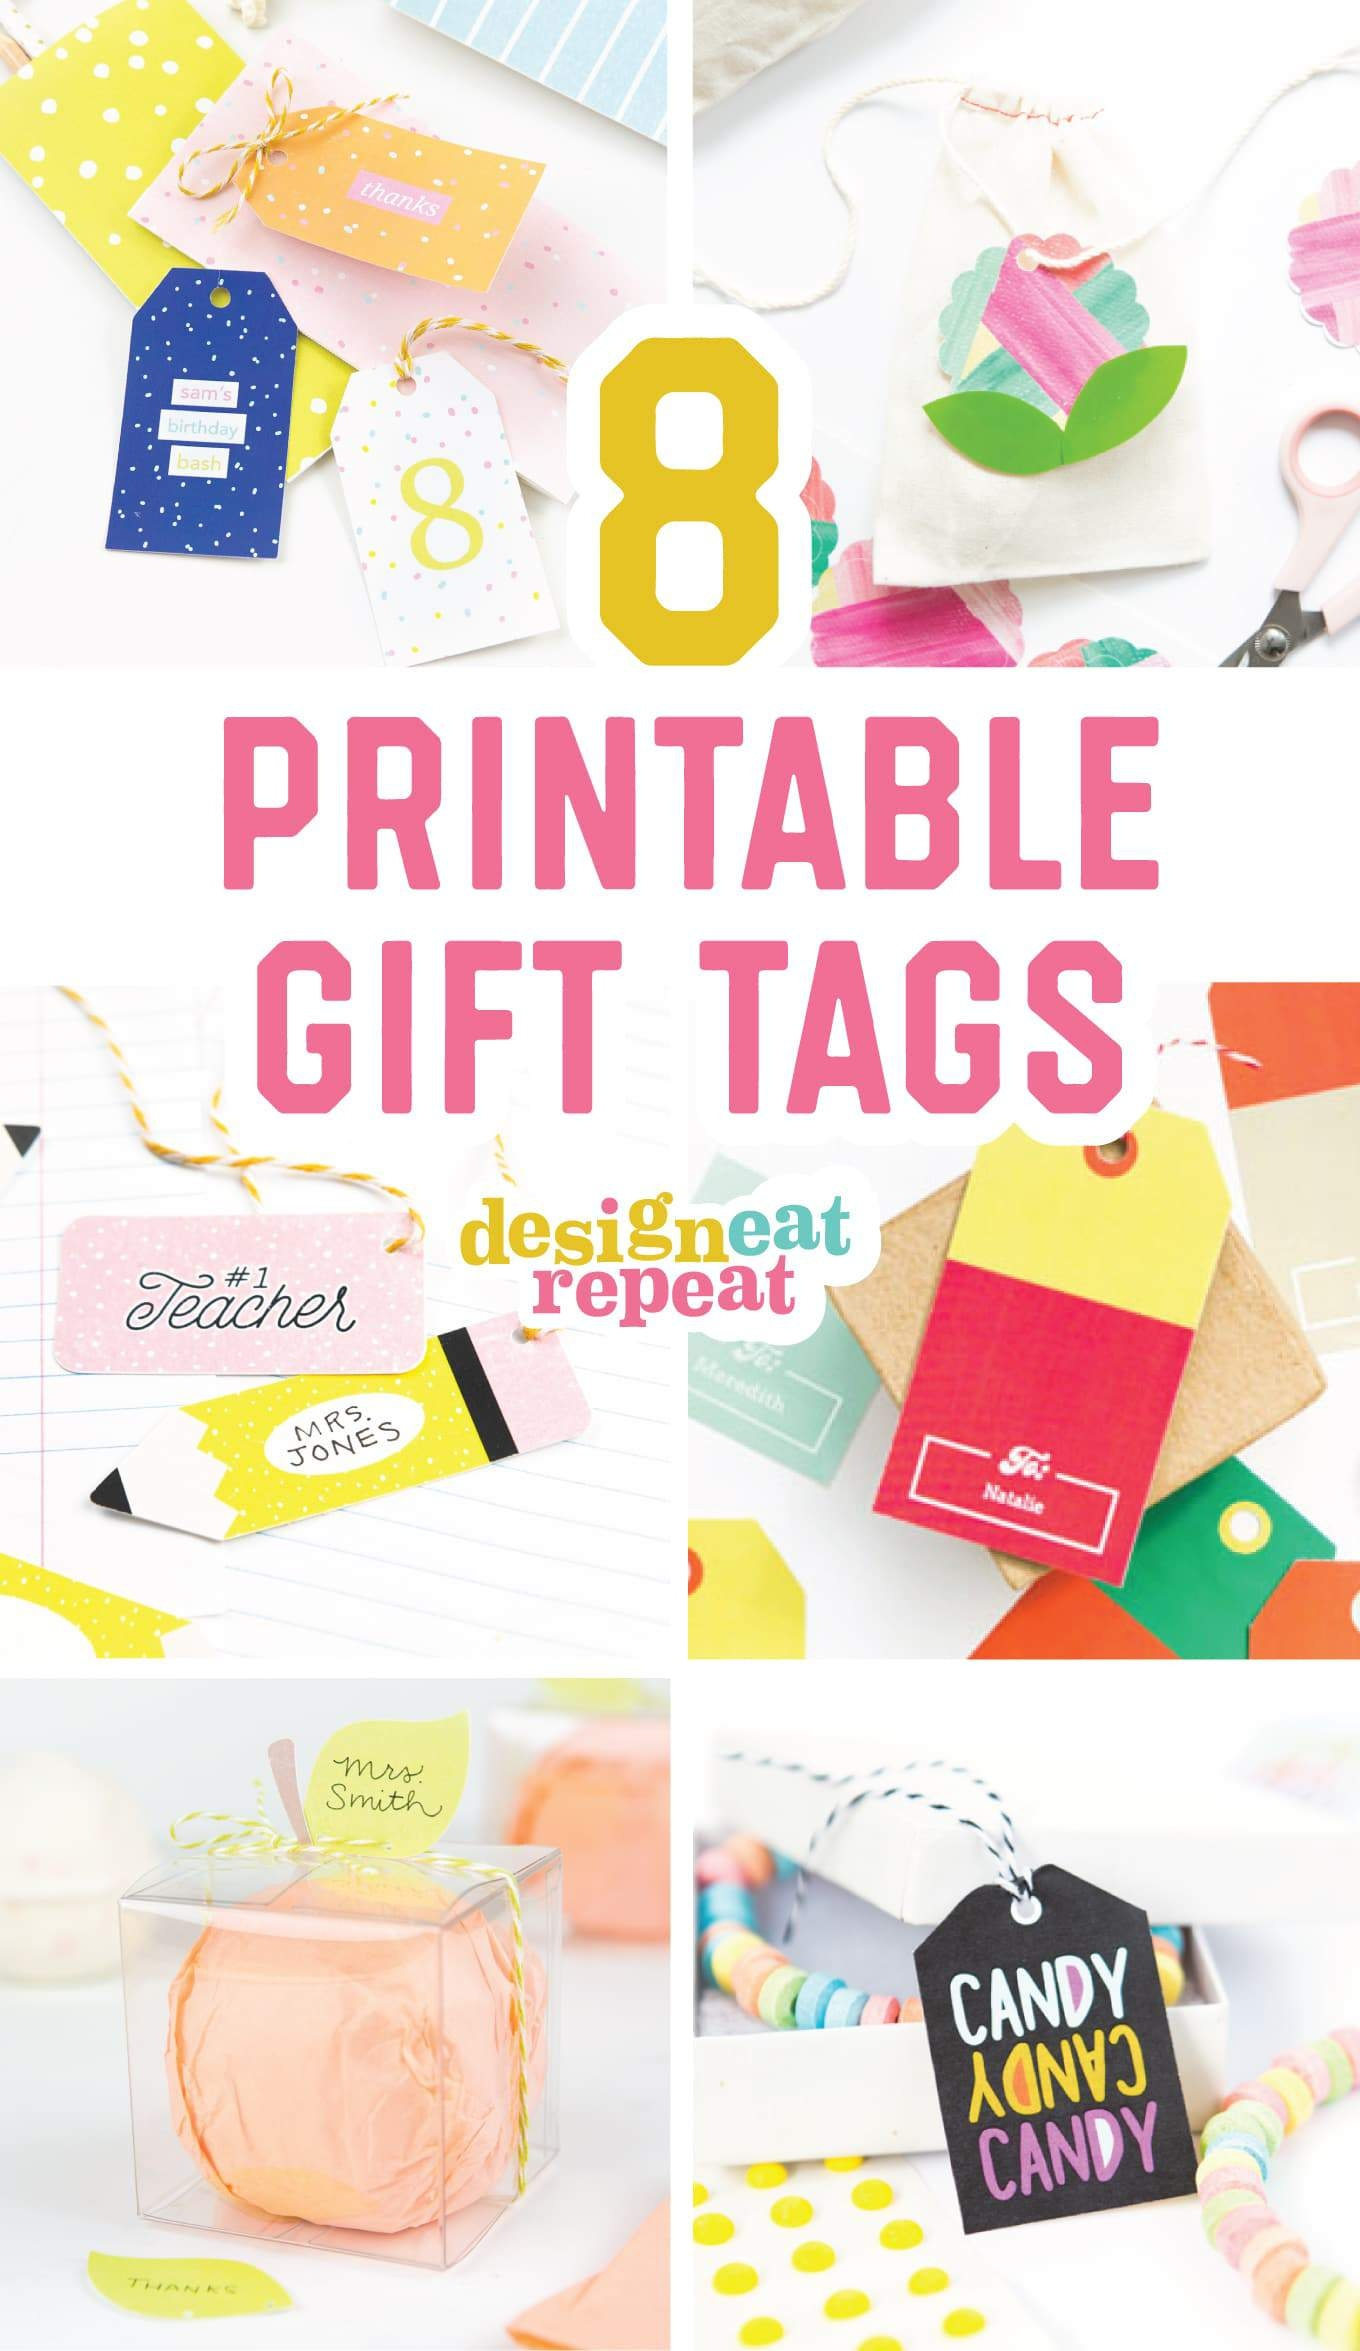 8 Colorful & Free Printable Gift Tags For Any Occasion! - Free Online Gift Tags Printable